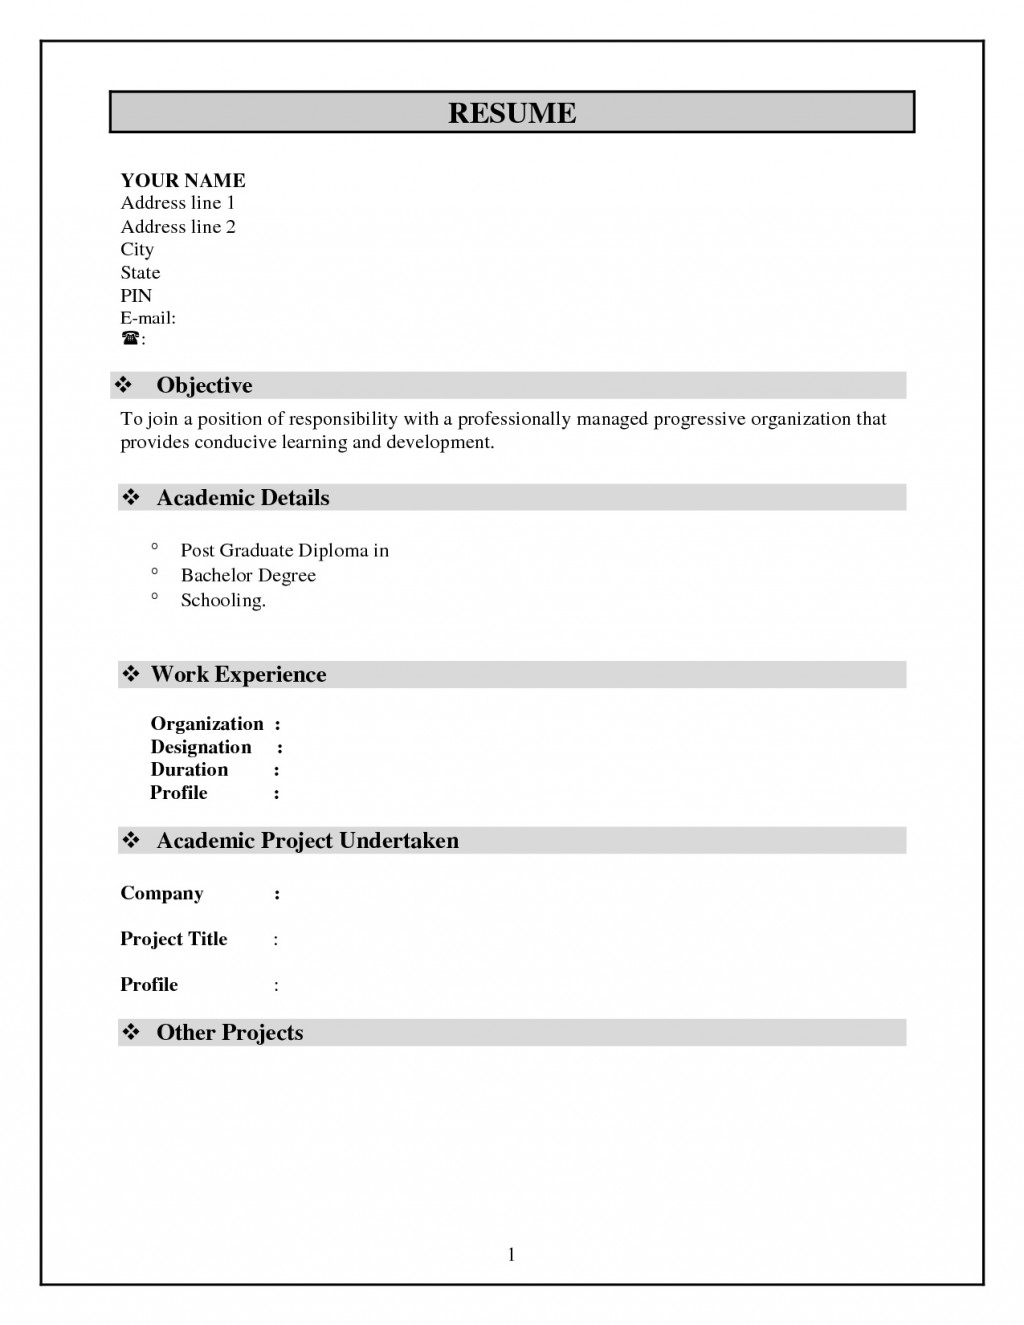 Simple Resume Template Free Download Idea  Word Pdf For StudentLarge